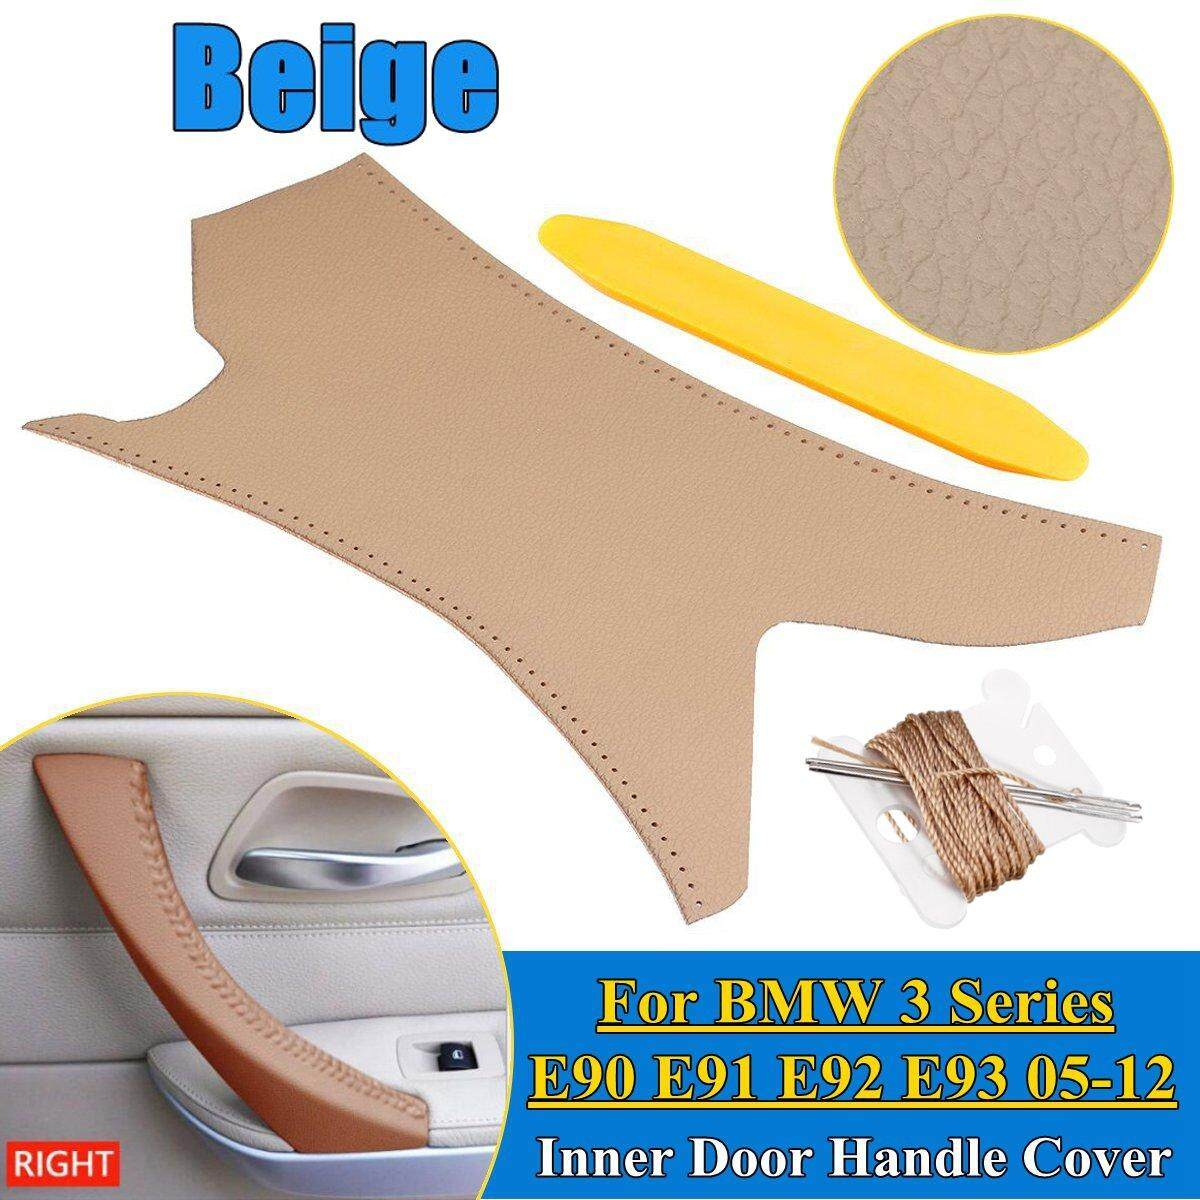 Right Inner Door Handle Cover Trim Hand Sewing For Bmw 3 Series E90 E91 E92 E93 【beige】 By Audew.